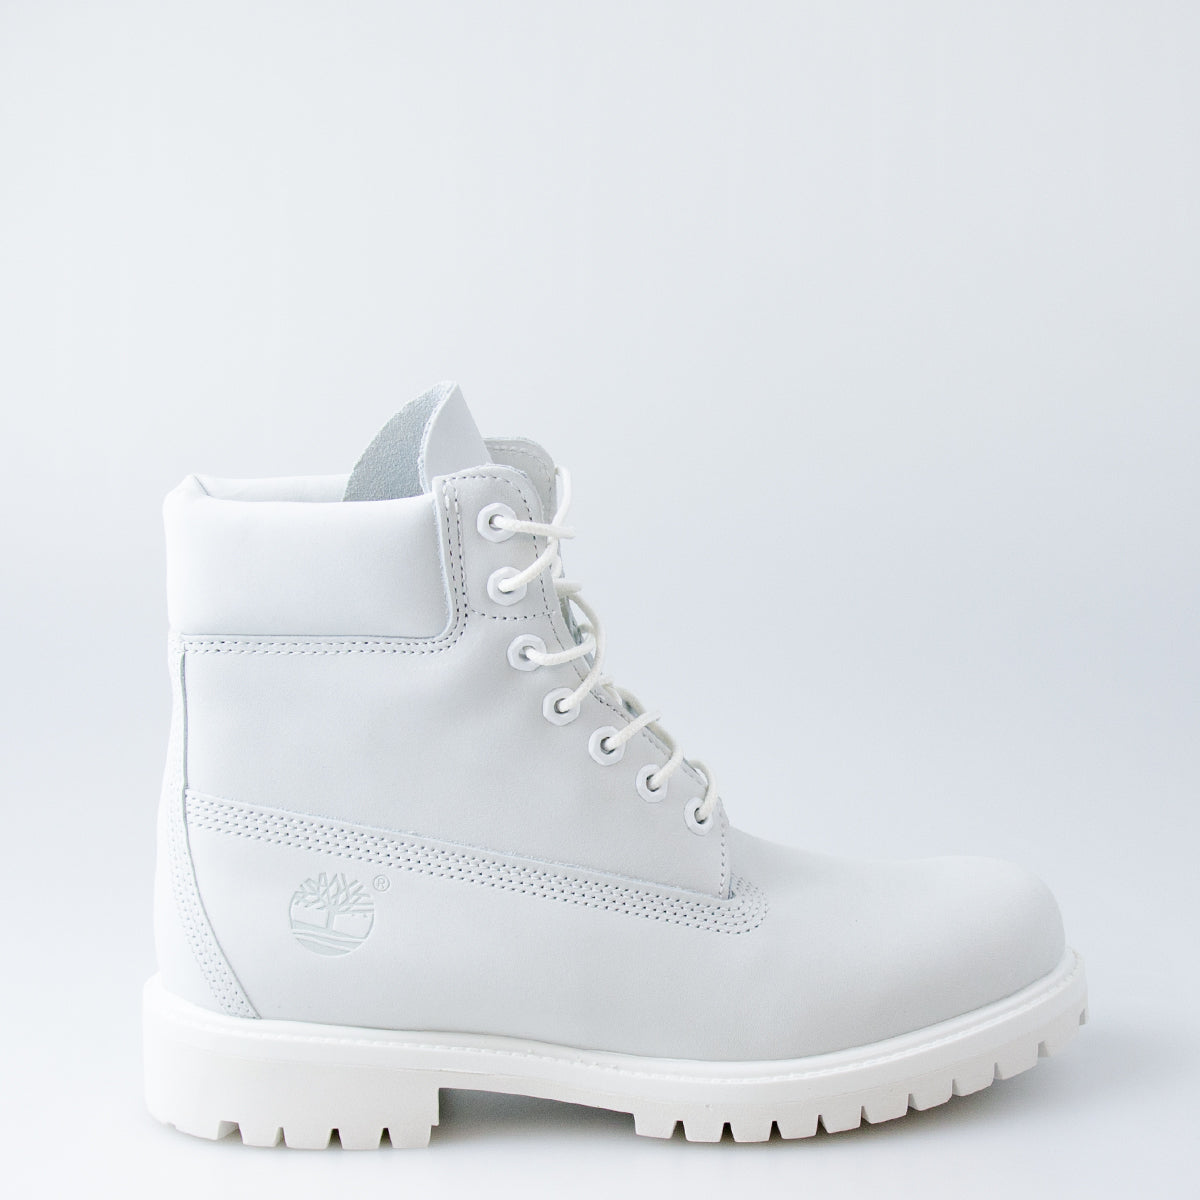 Men s Timberland Limited Release 6-Inch Premium Waterproof Boots Ghost White 9949a2f59b